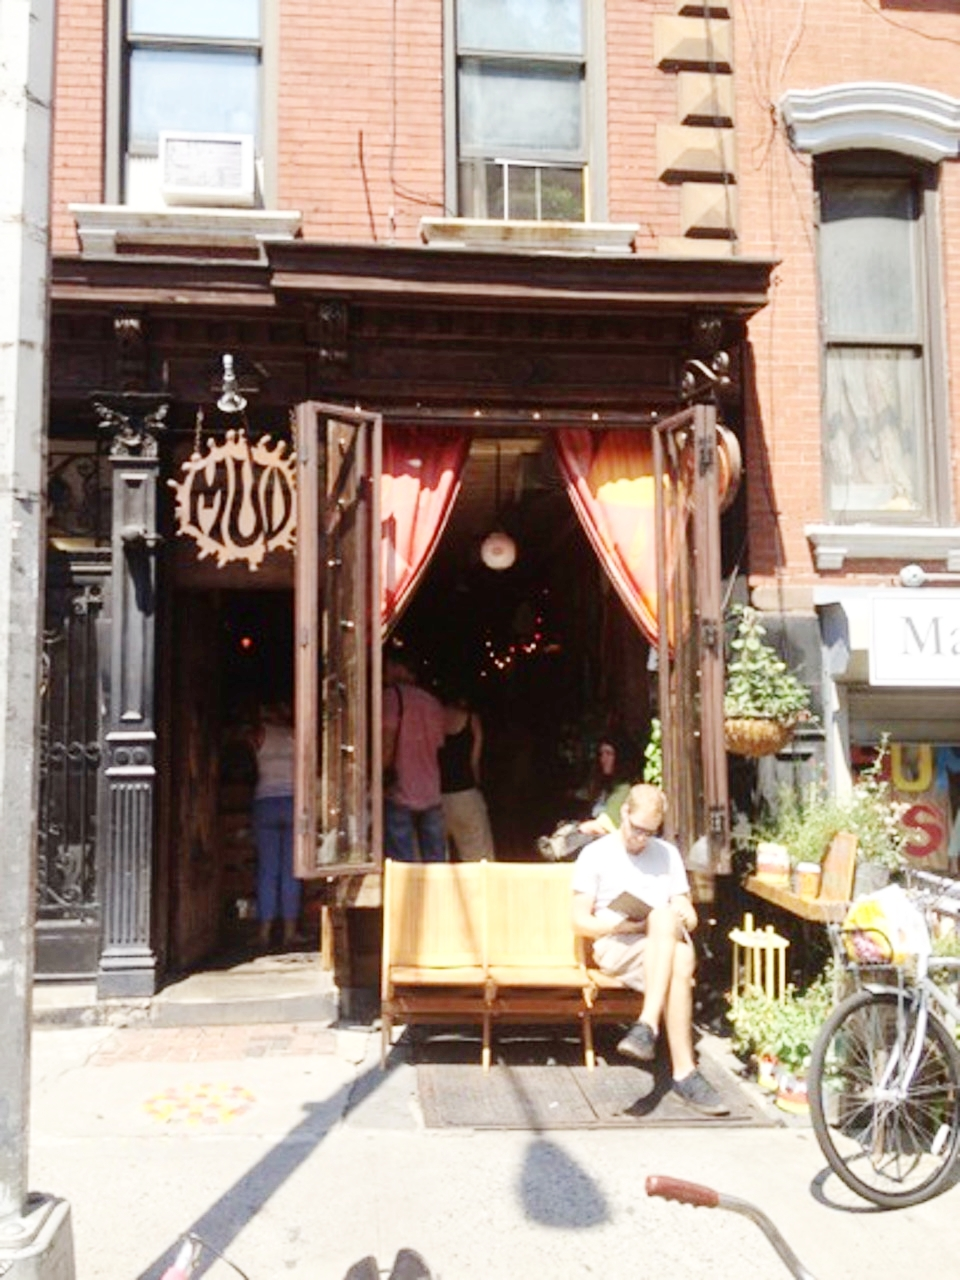 Mud Coffee at 307 East 9th Street, East Village, New York